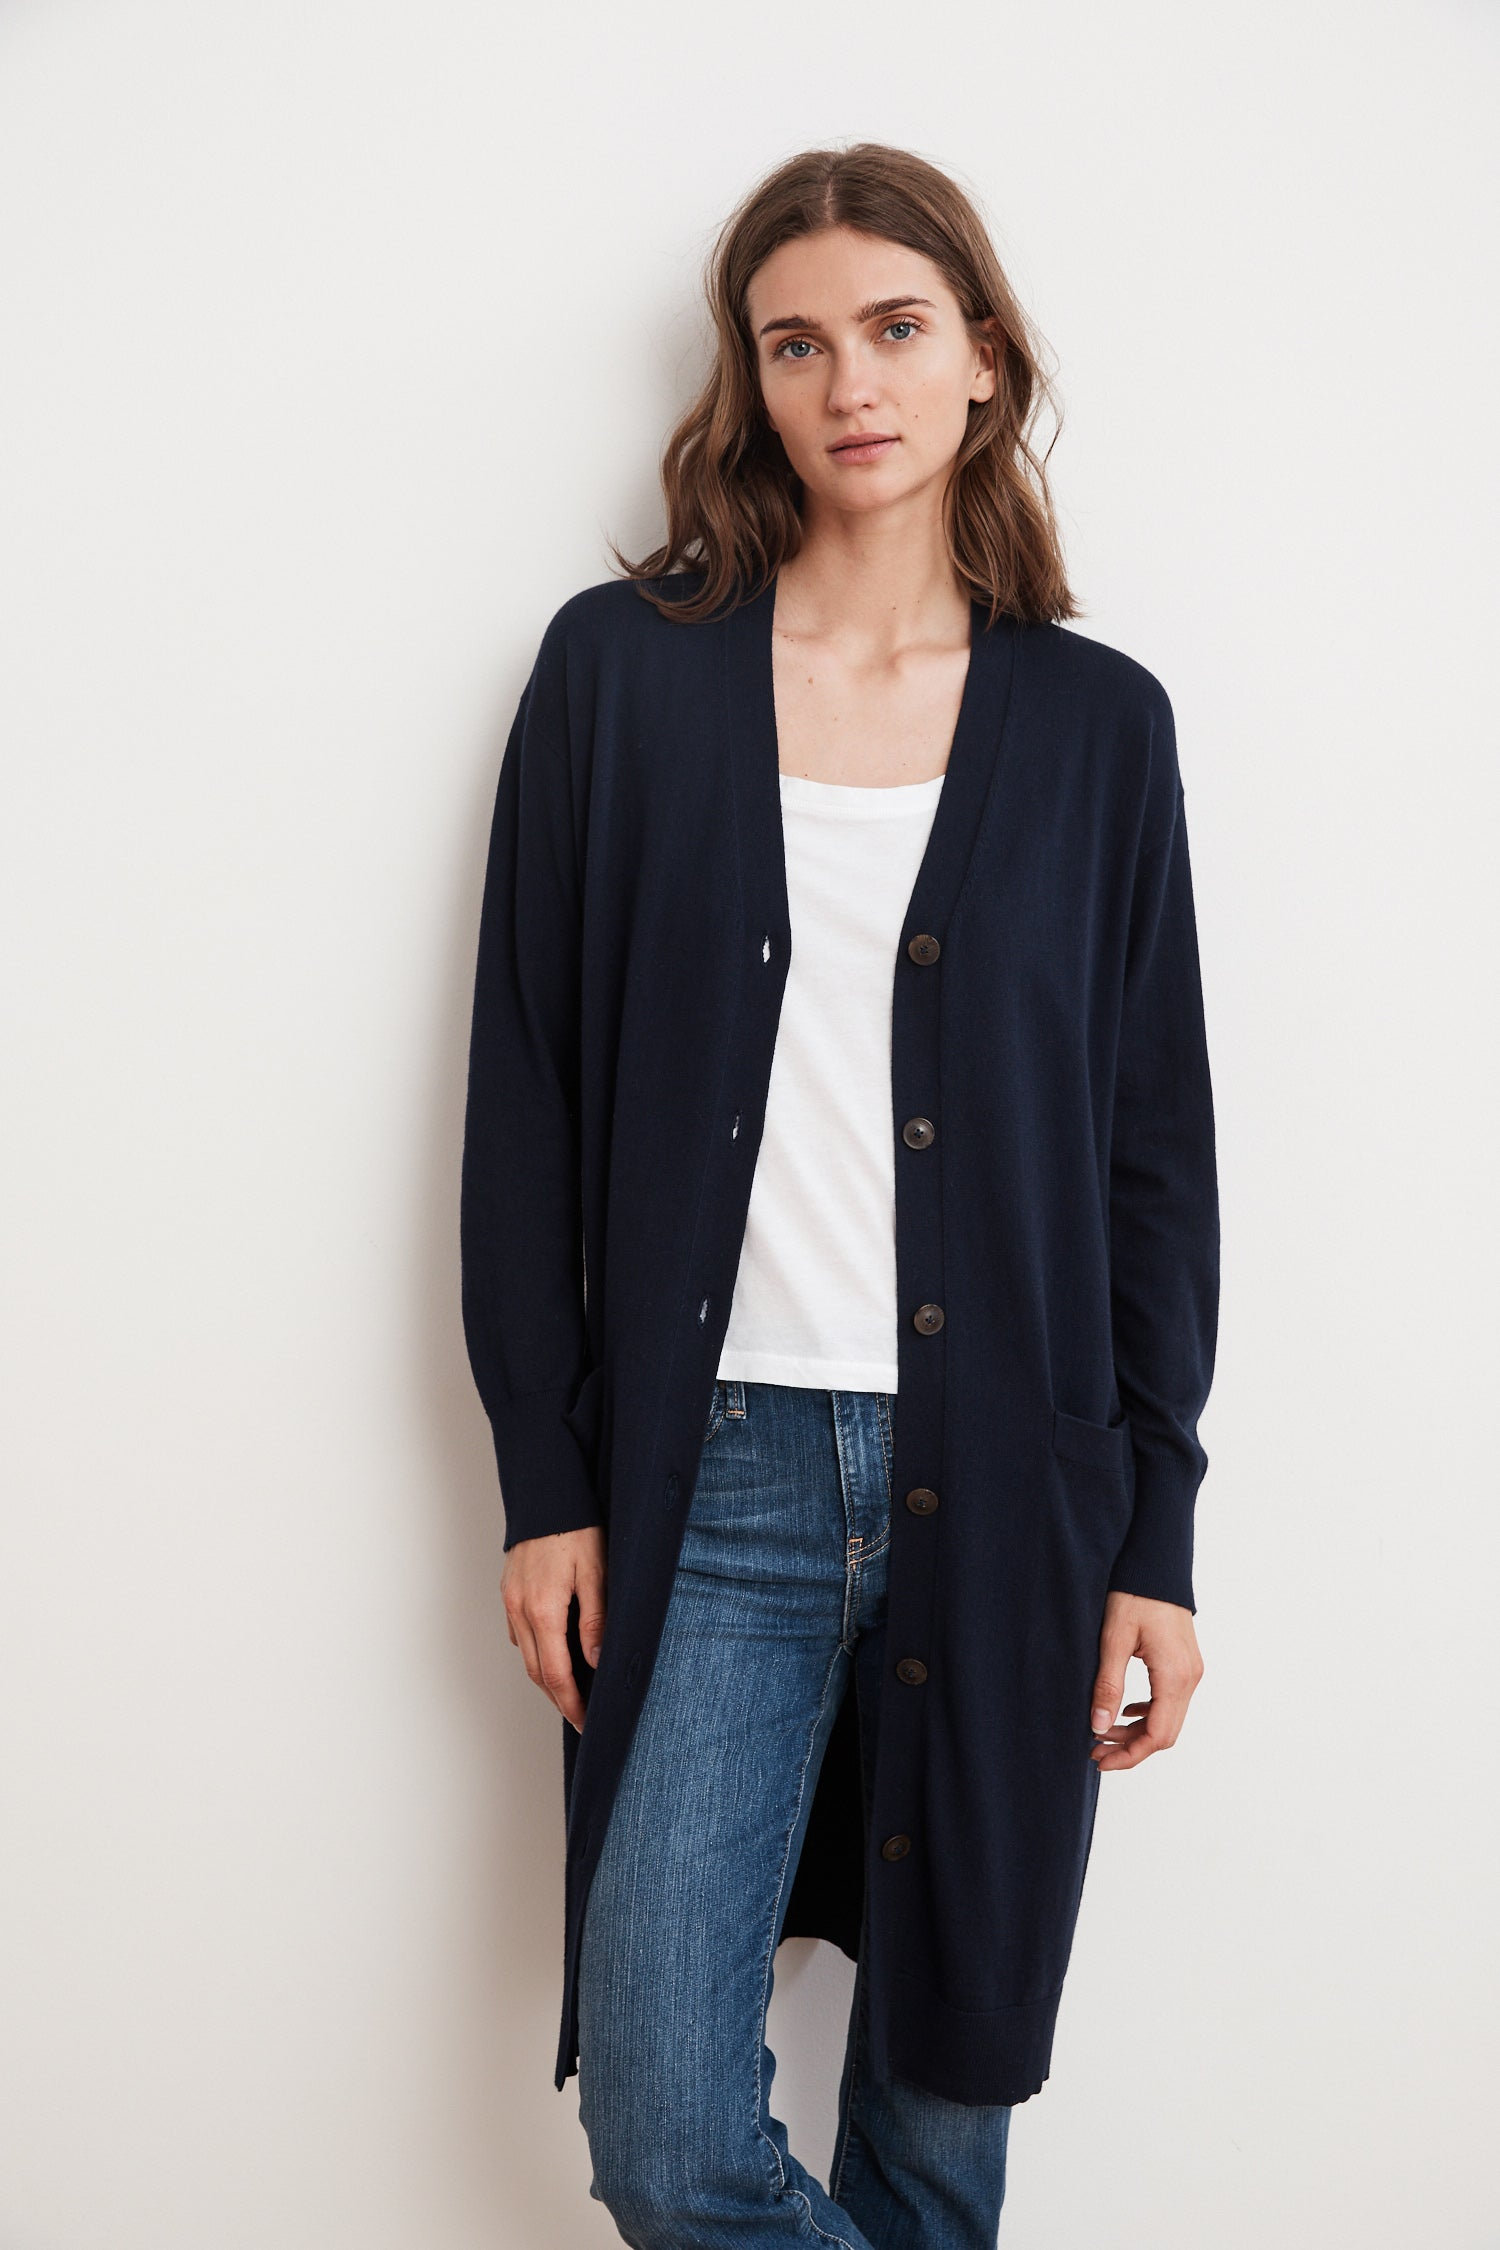 TANIA LIGHTWEIGHT COTTON CASHMERE DUSTER CARDIGAN IN MARIN